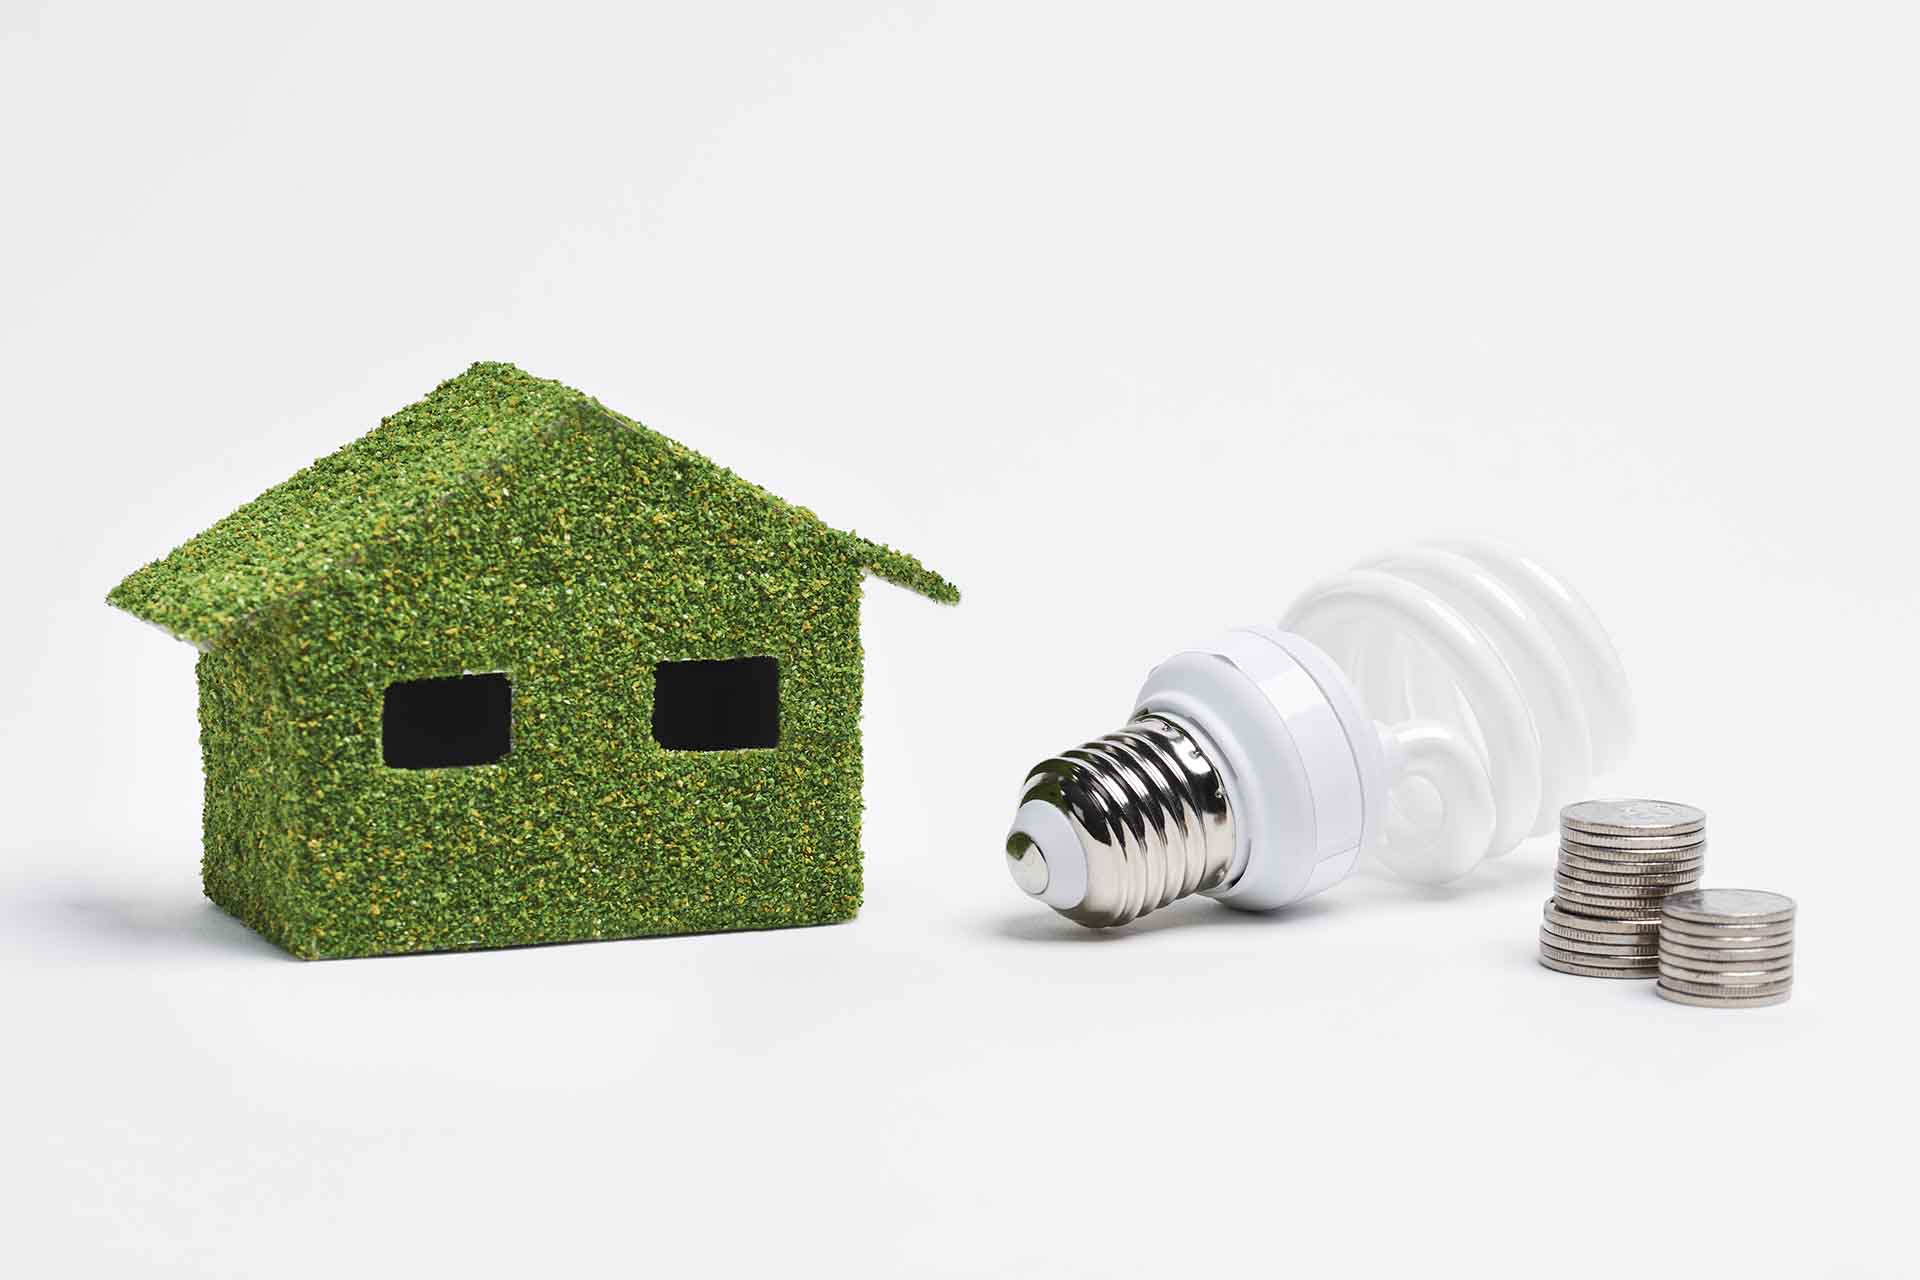 5 Steps to Improve Energy Efficiency at Home